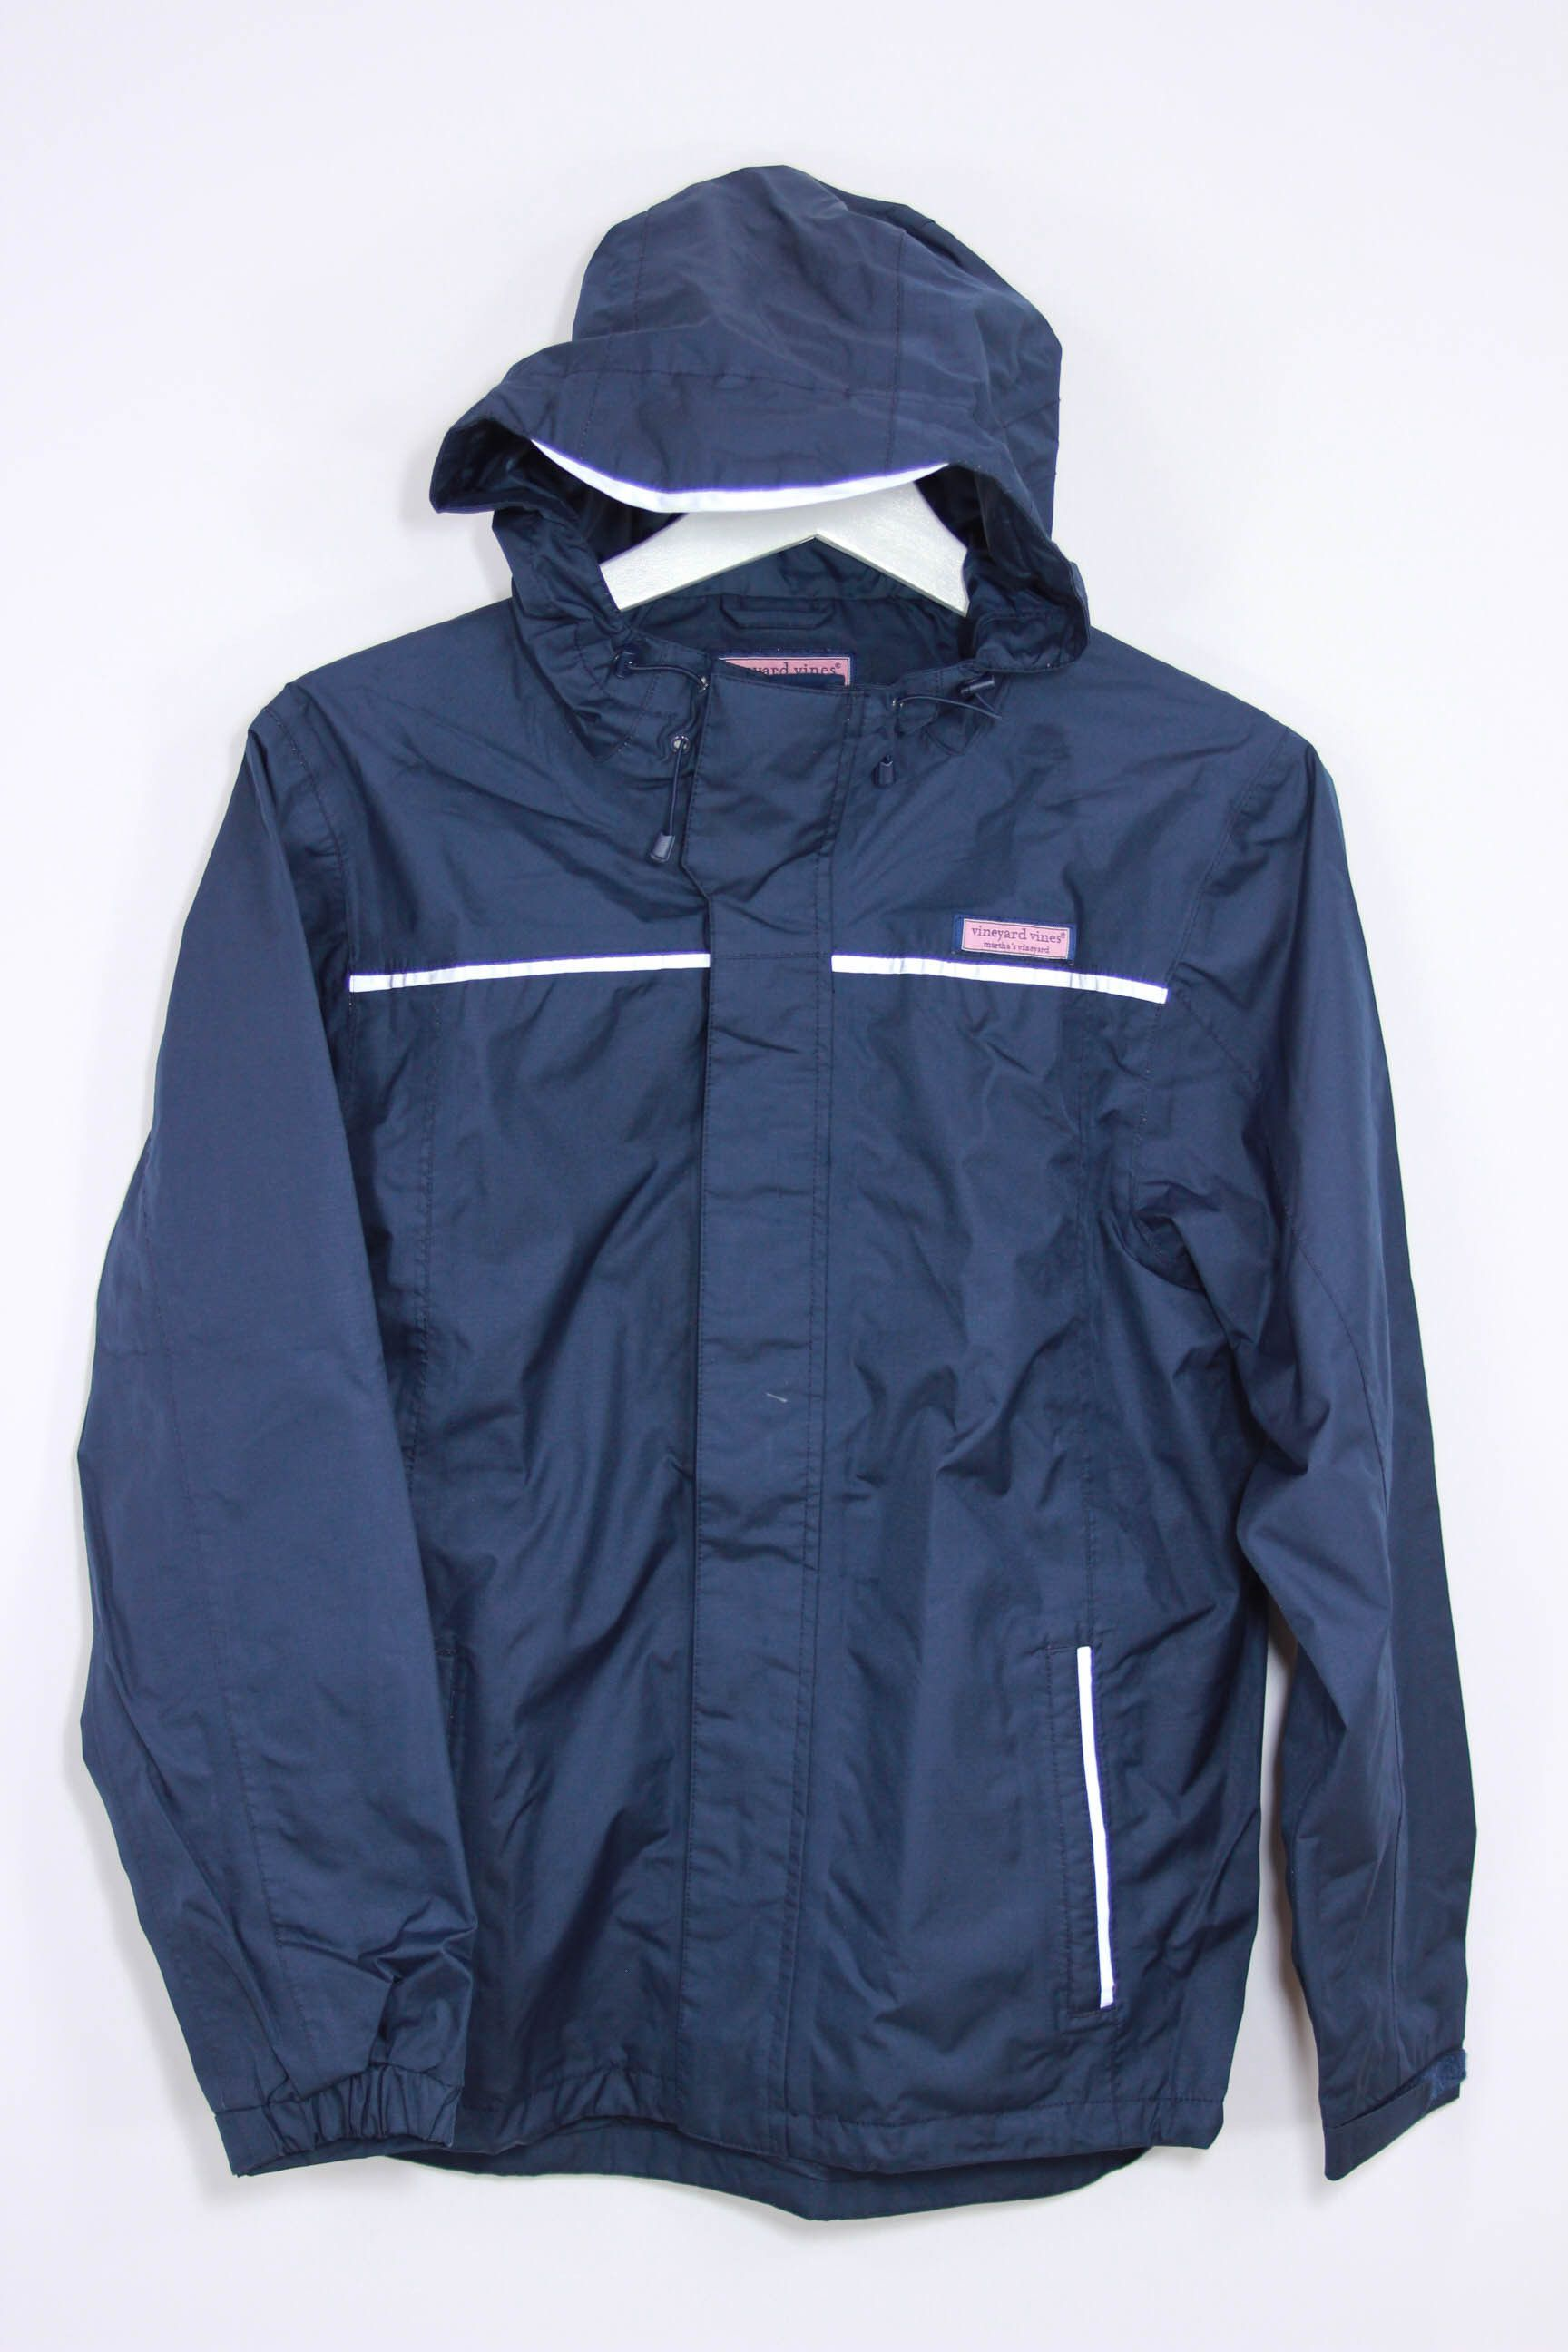 273123af1 Vineyard Vines Marthas Vineyard Size 16/18 Rain Jacket | Vineyard ...